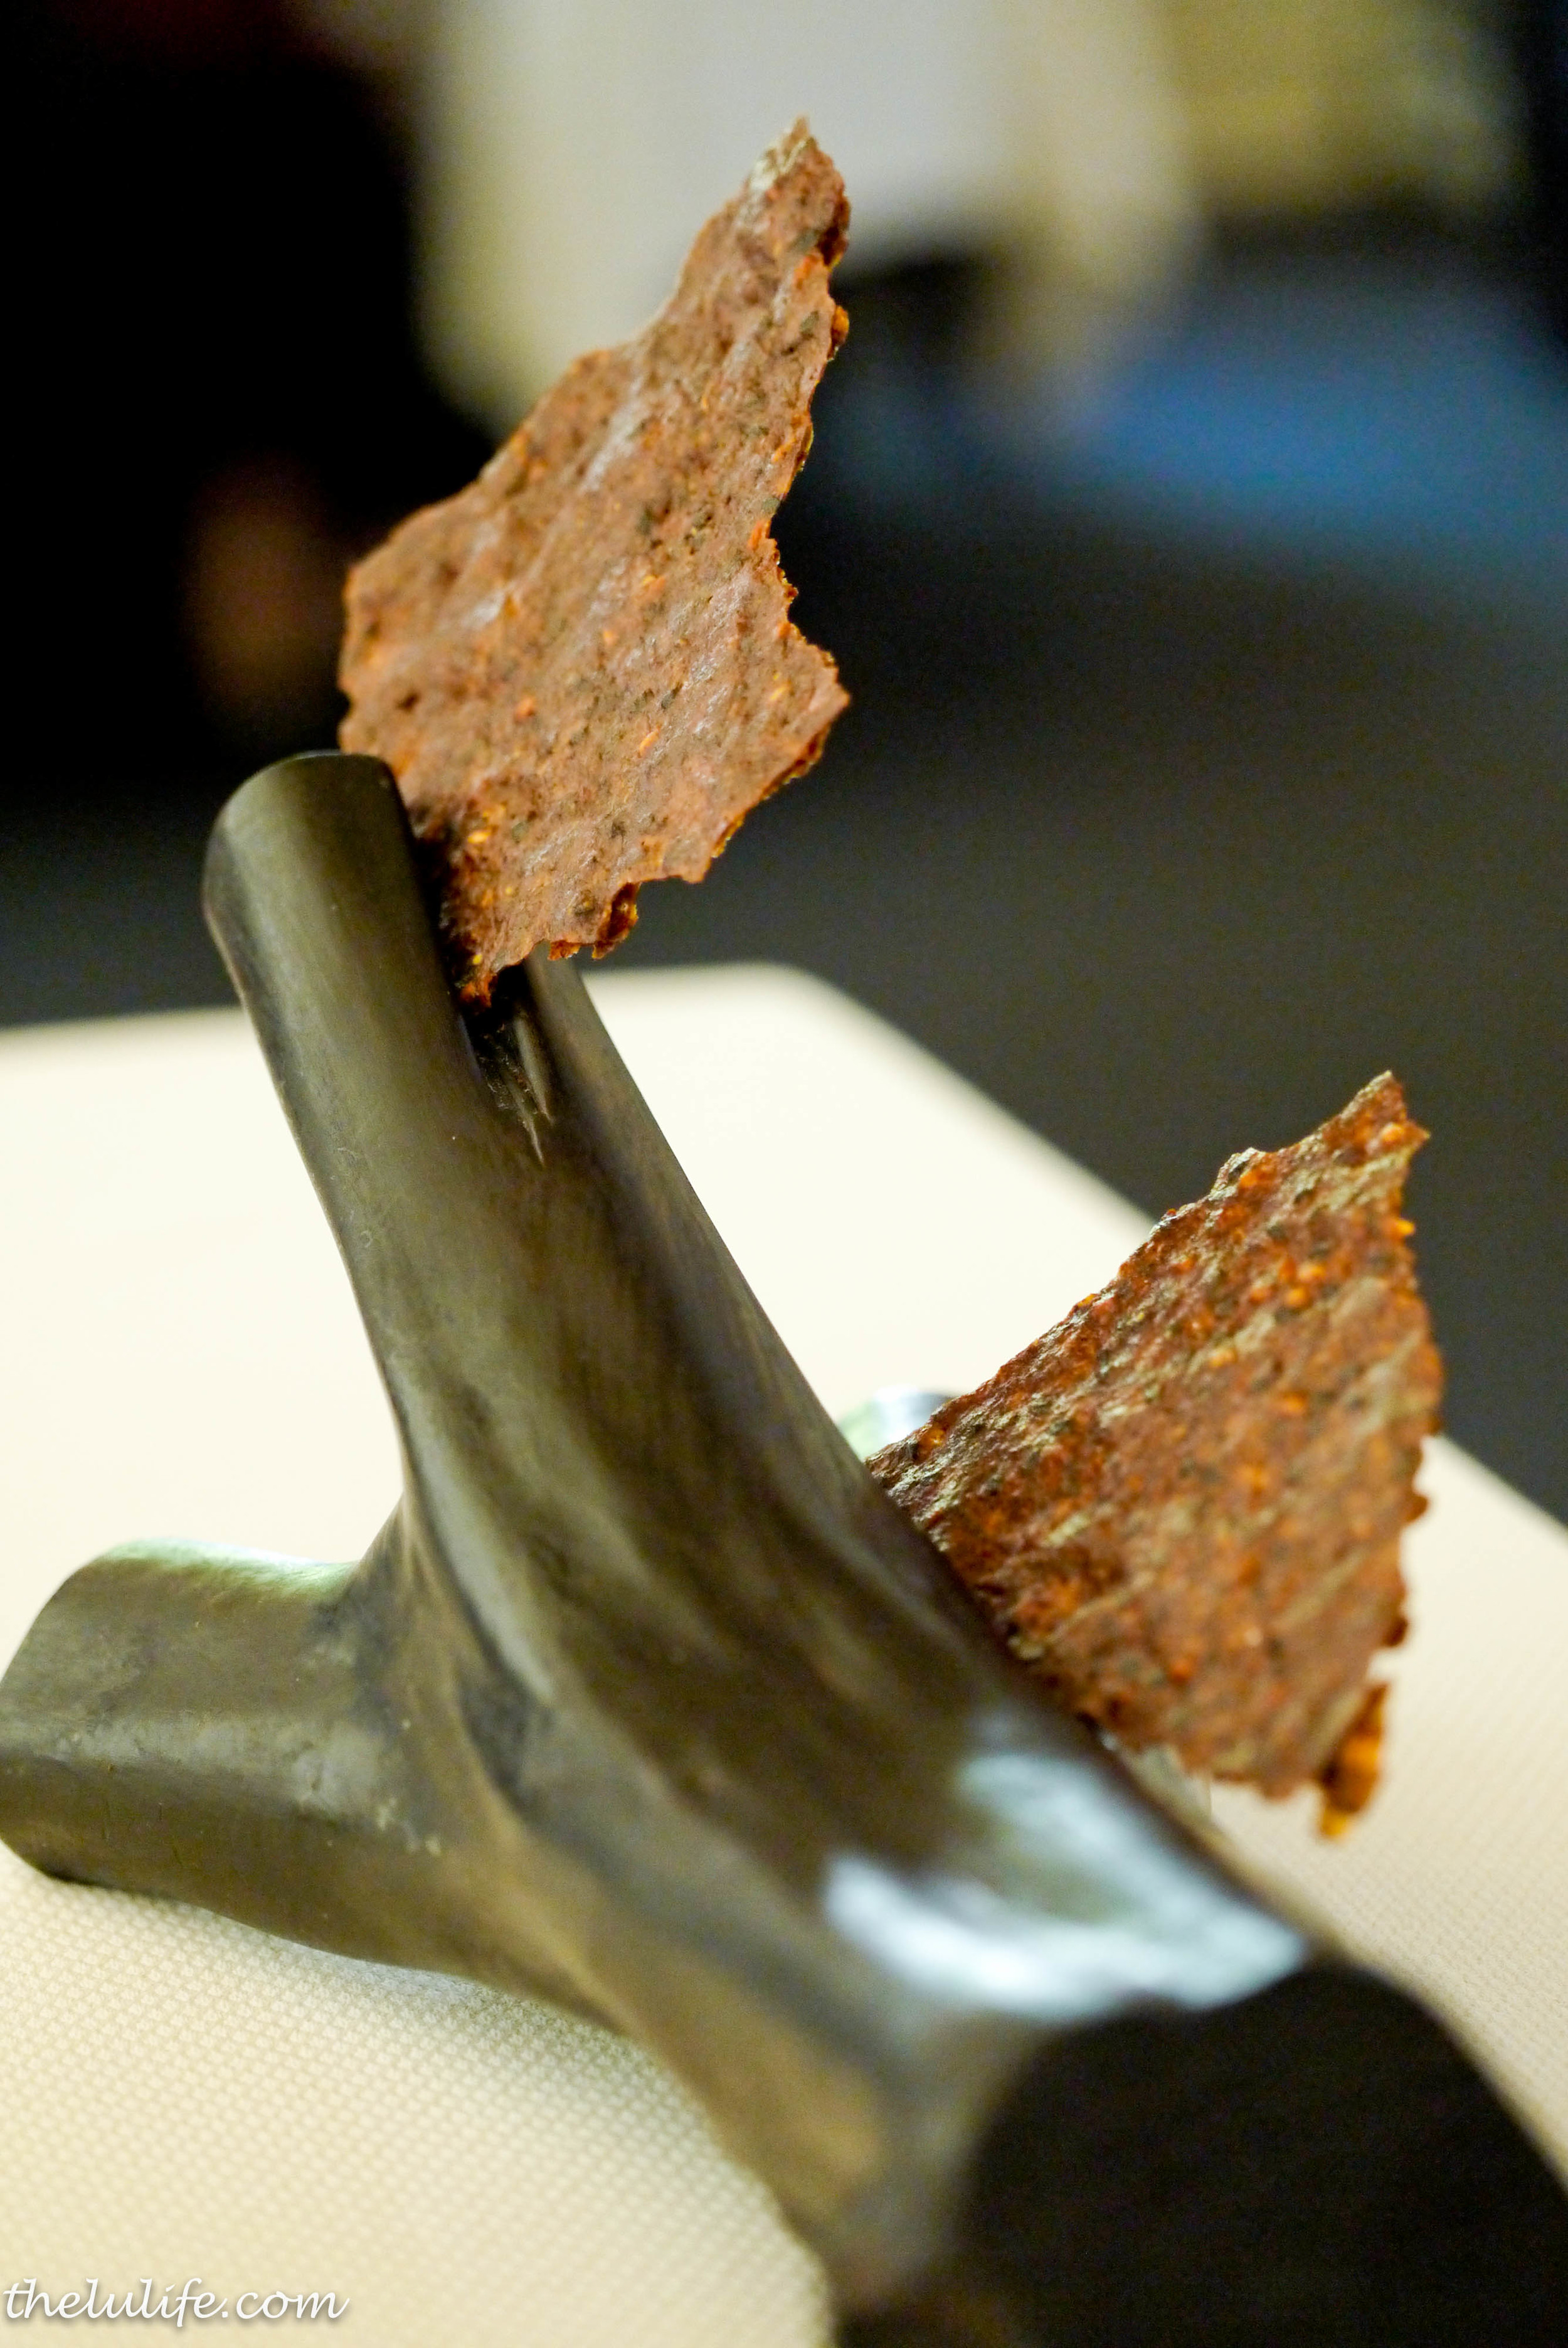 Course #3: Onion seed crackers